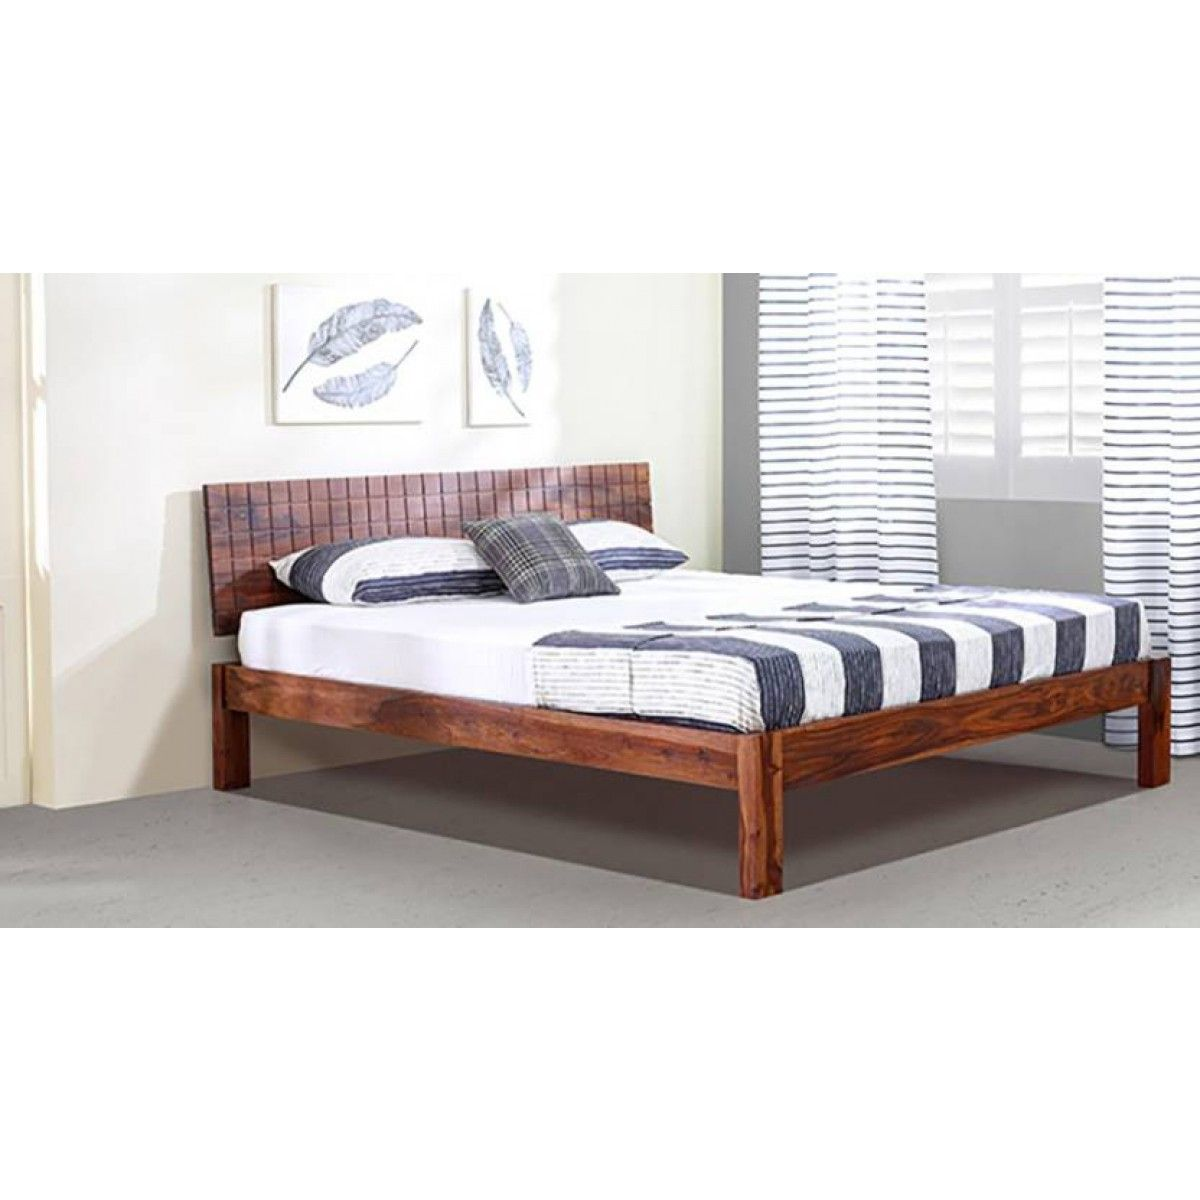 Valencia Designed Wooden King Size Bed In 2019 Wooden King